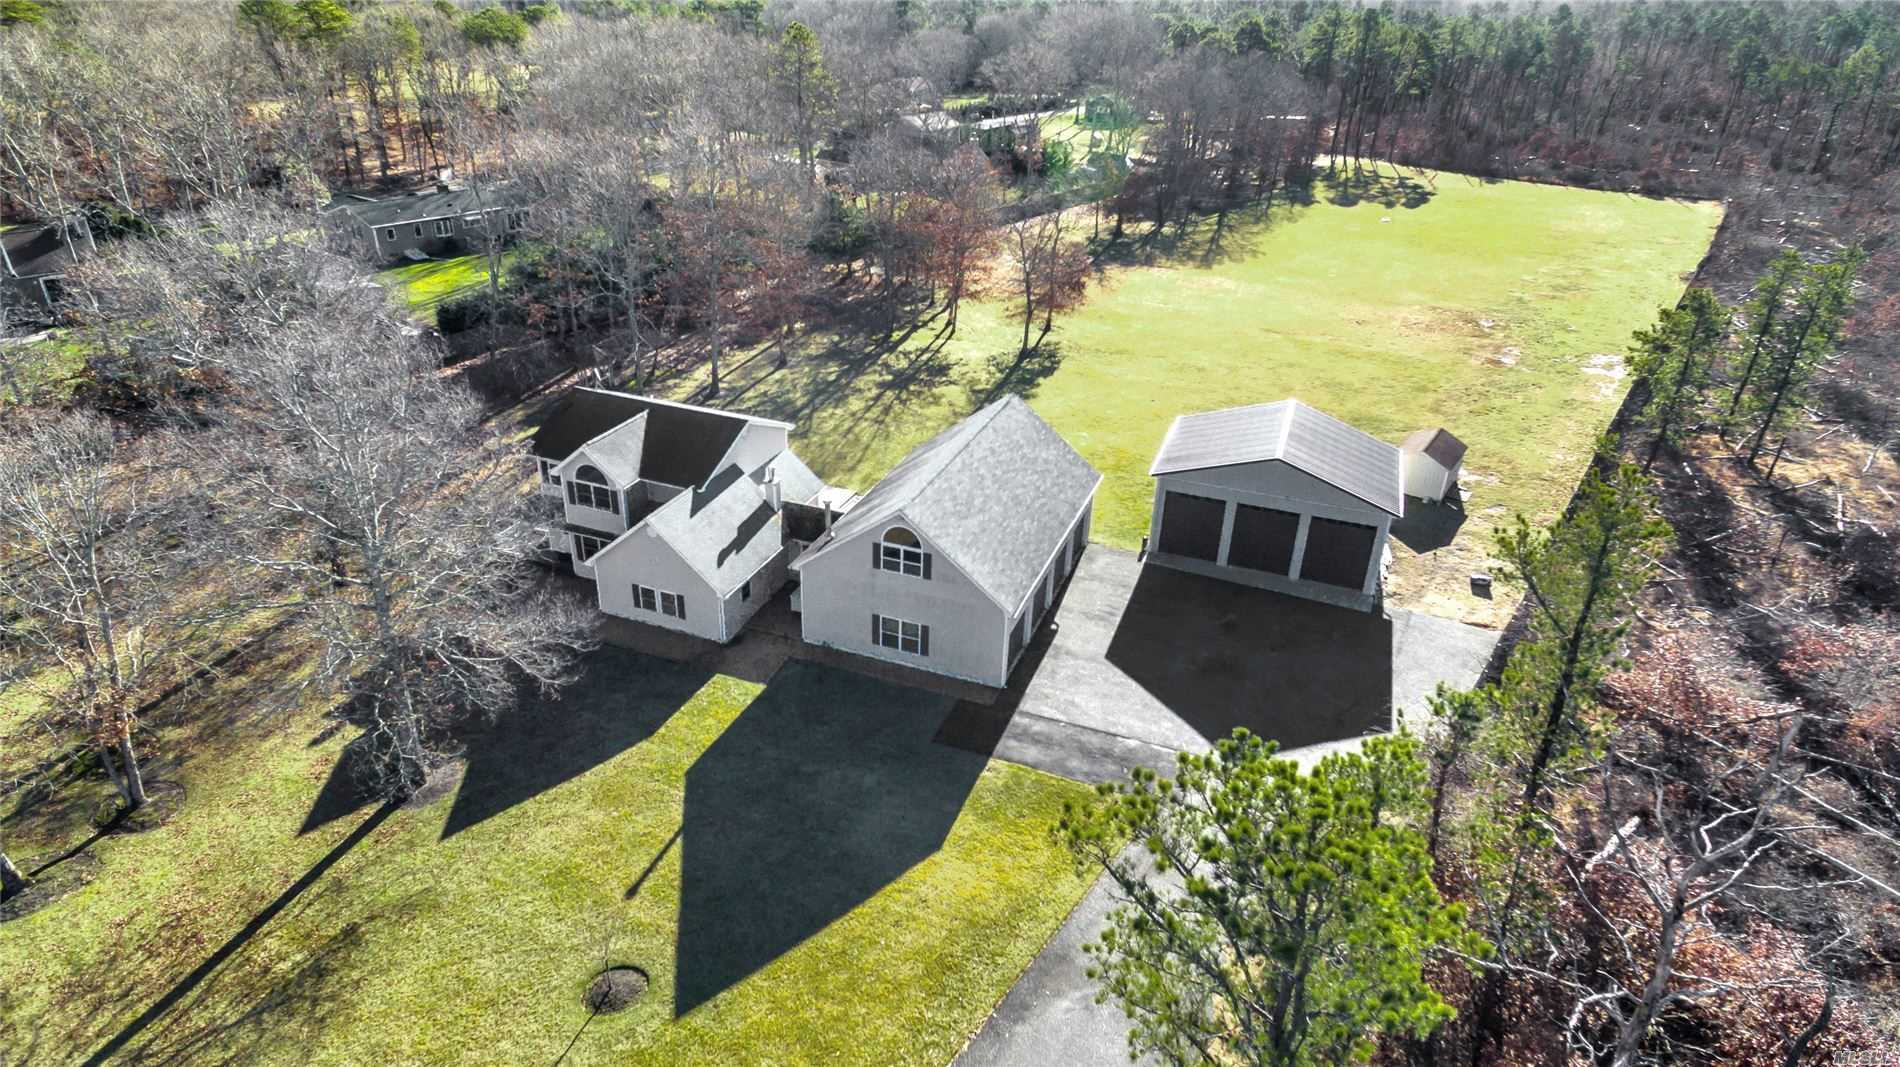 209 Wad River Manor Rd - Manorville, New York